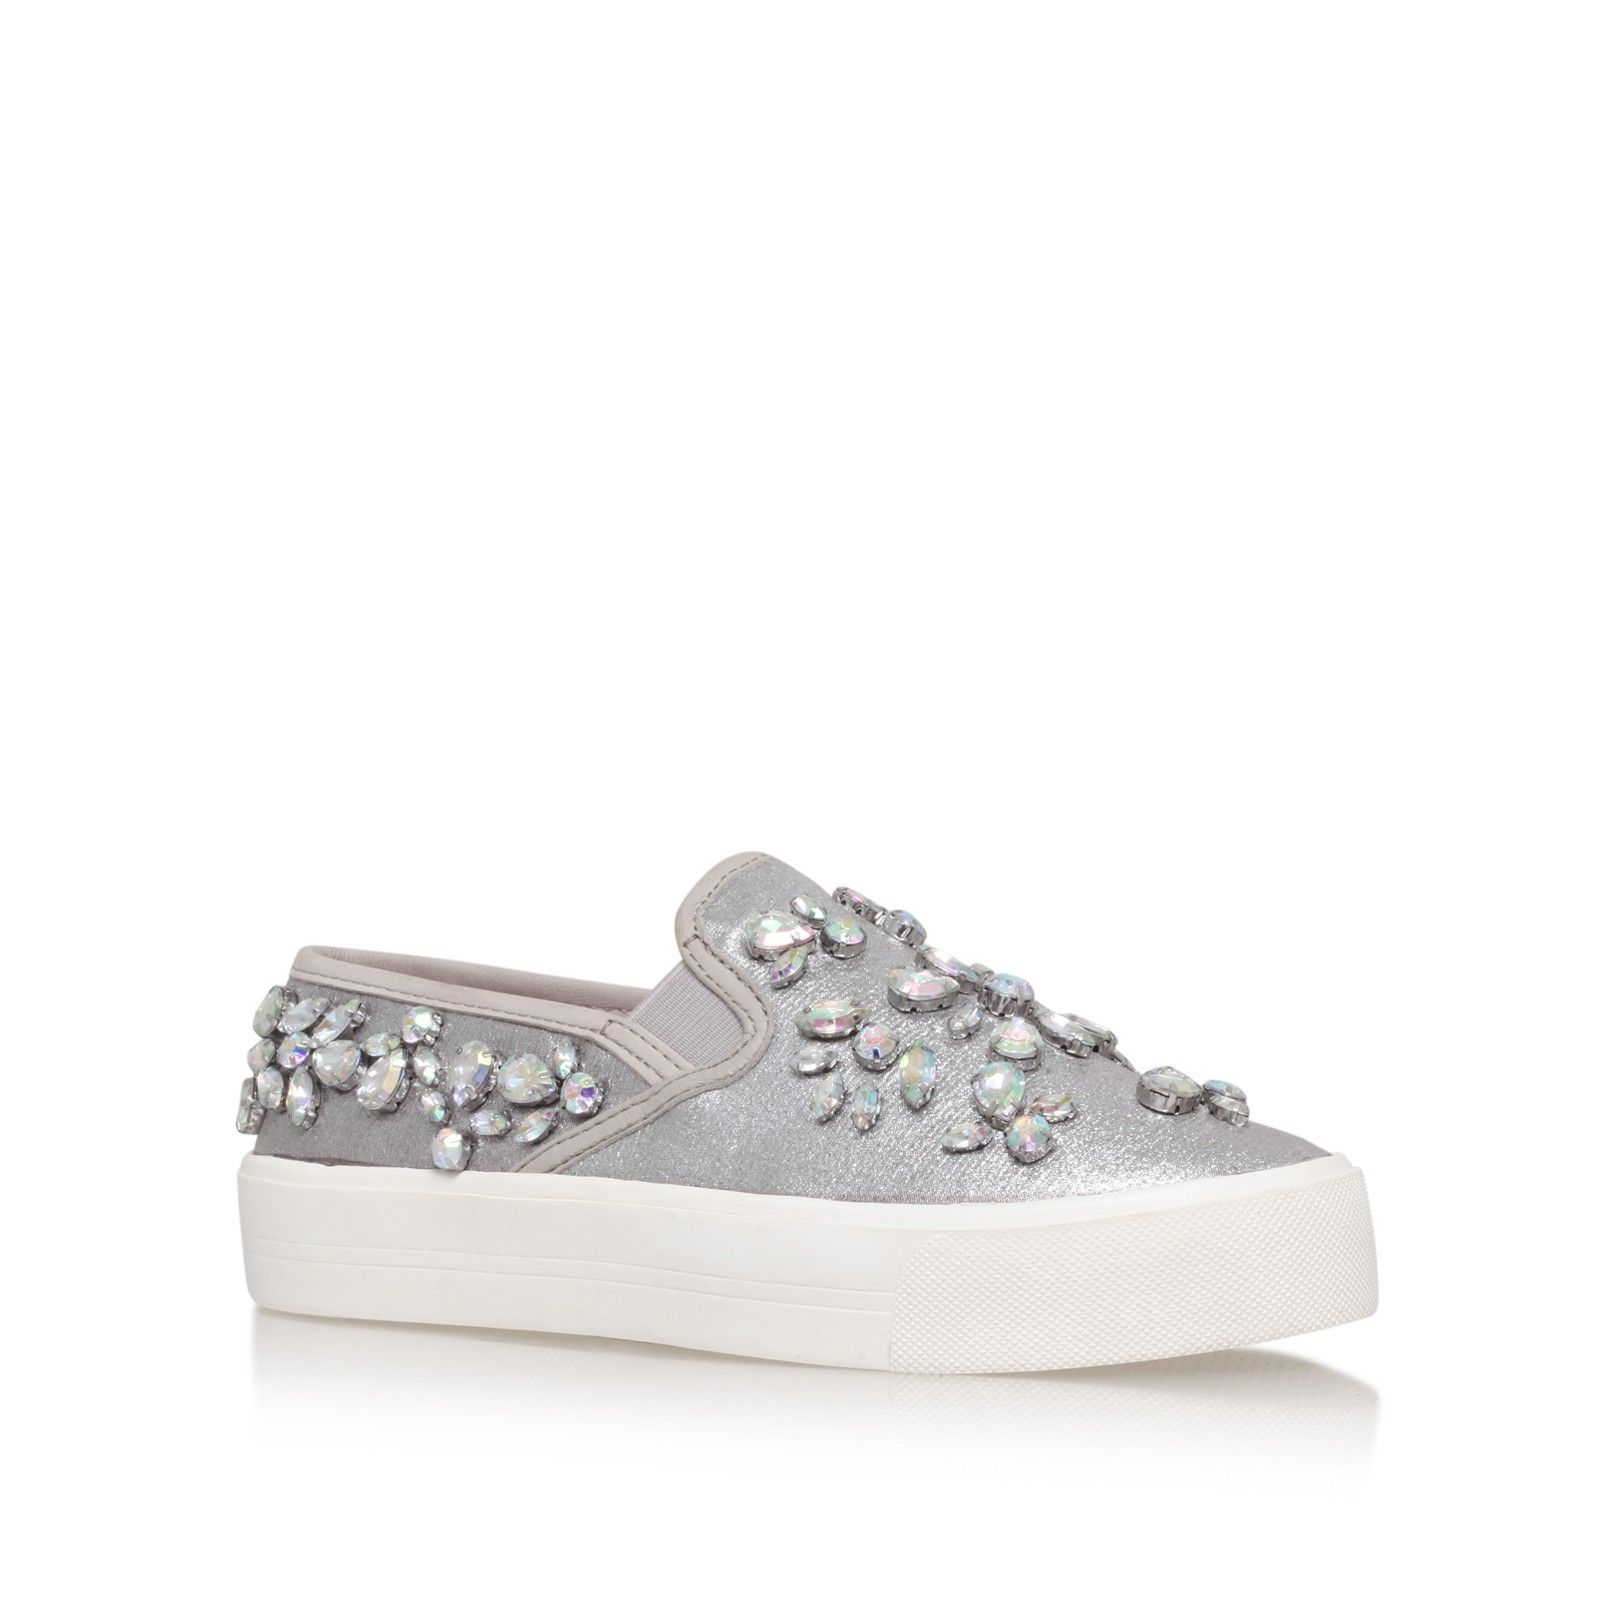 20 pairs of shiny silver trainers to